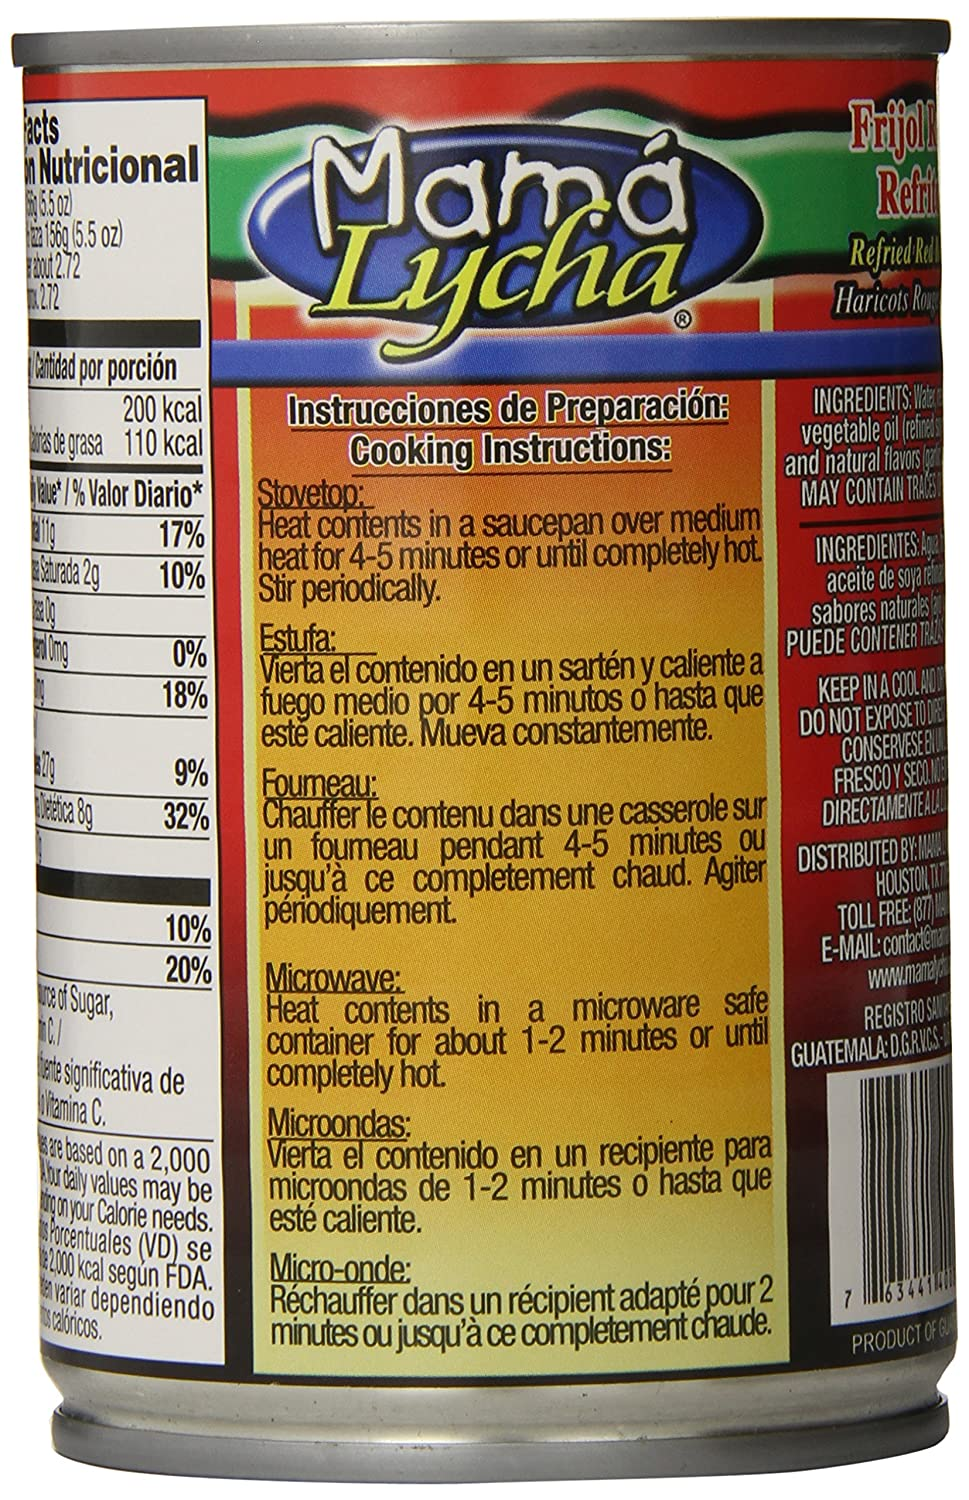 Amazon.com : Mama Lycha Refried Red Beans, 16 Ounce : Beans Produce : Grocery & Gourmet Food